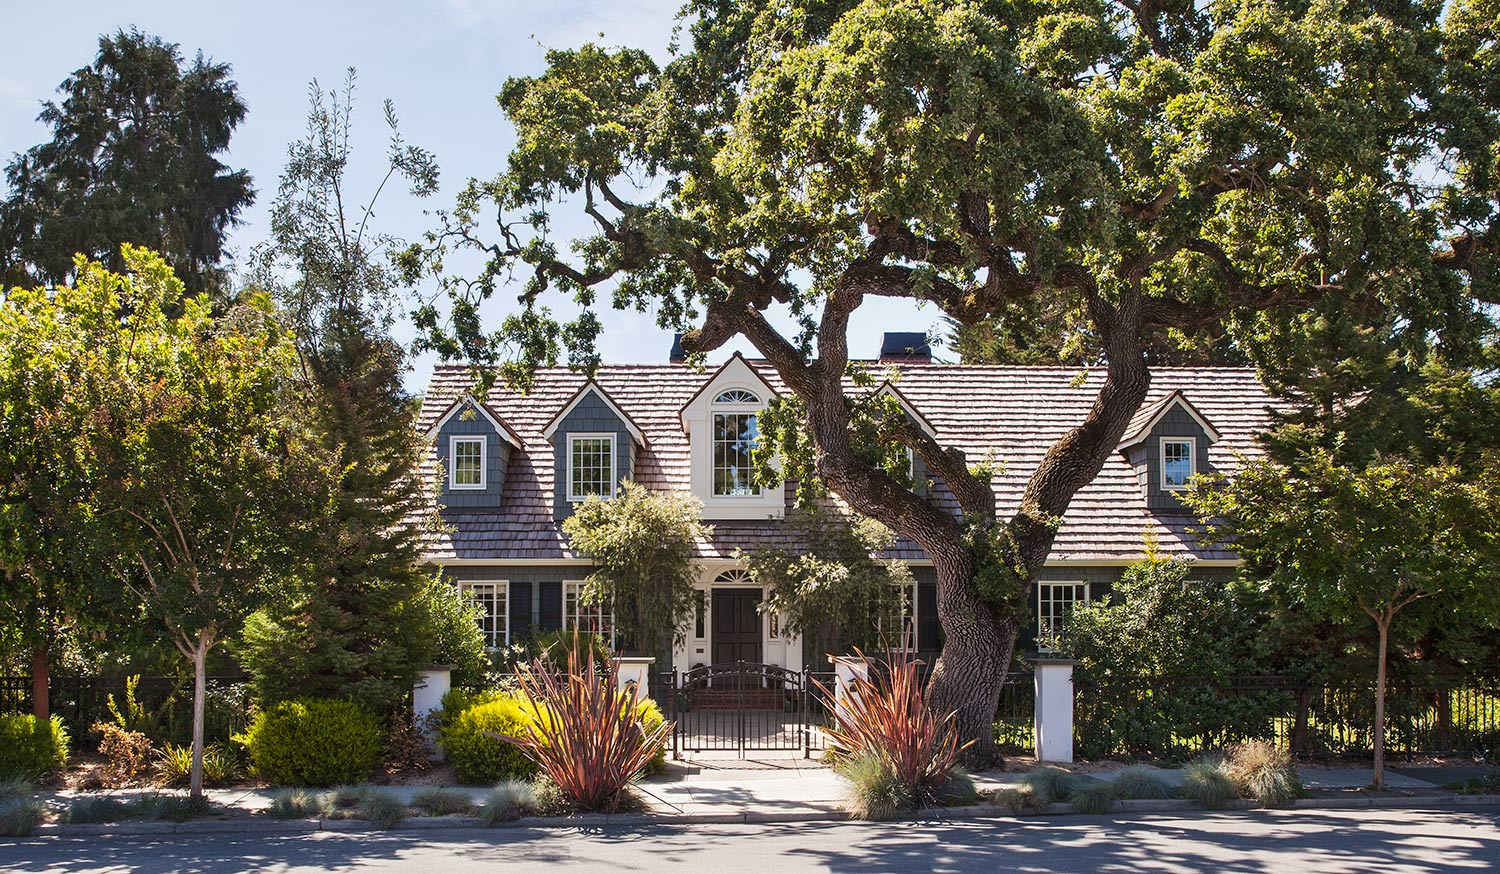 Bay Area Custom Homes | Andrew Morrall Architect